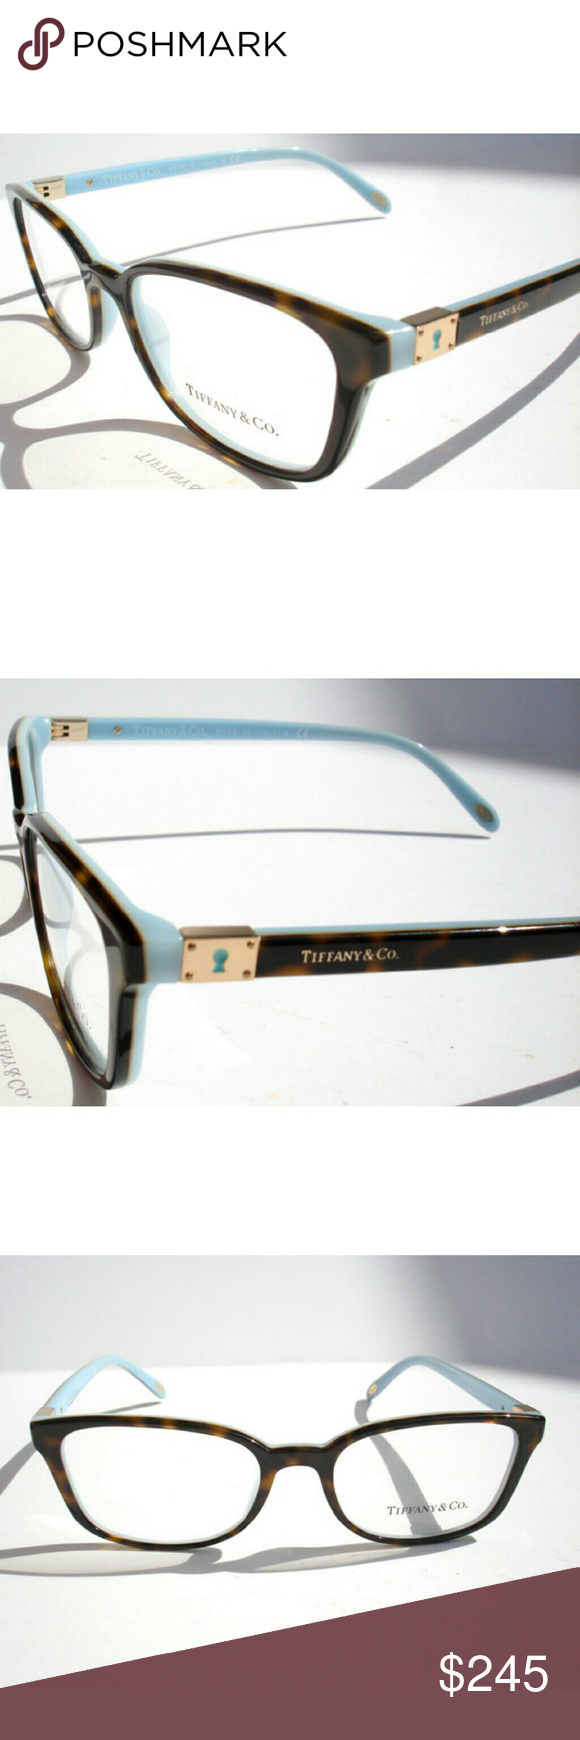 Tiffany & Co Eyeglasses Authentic Tiffany & Co Eyeglasses Brown and ...